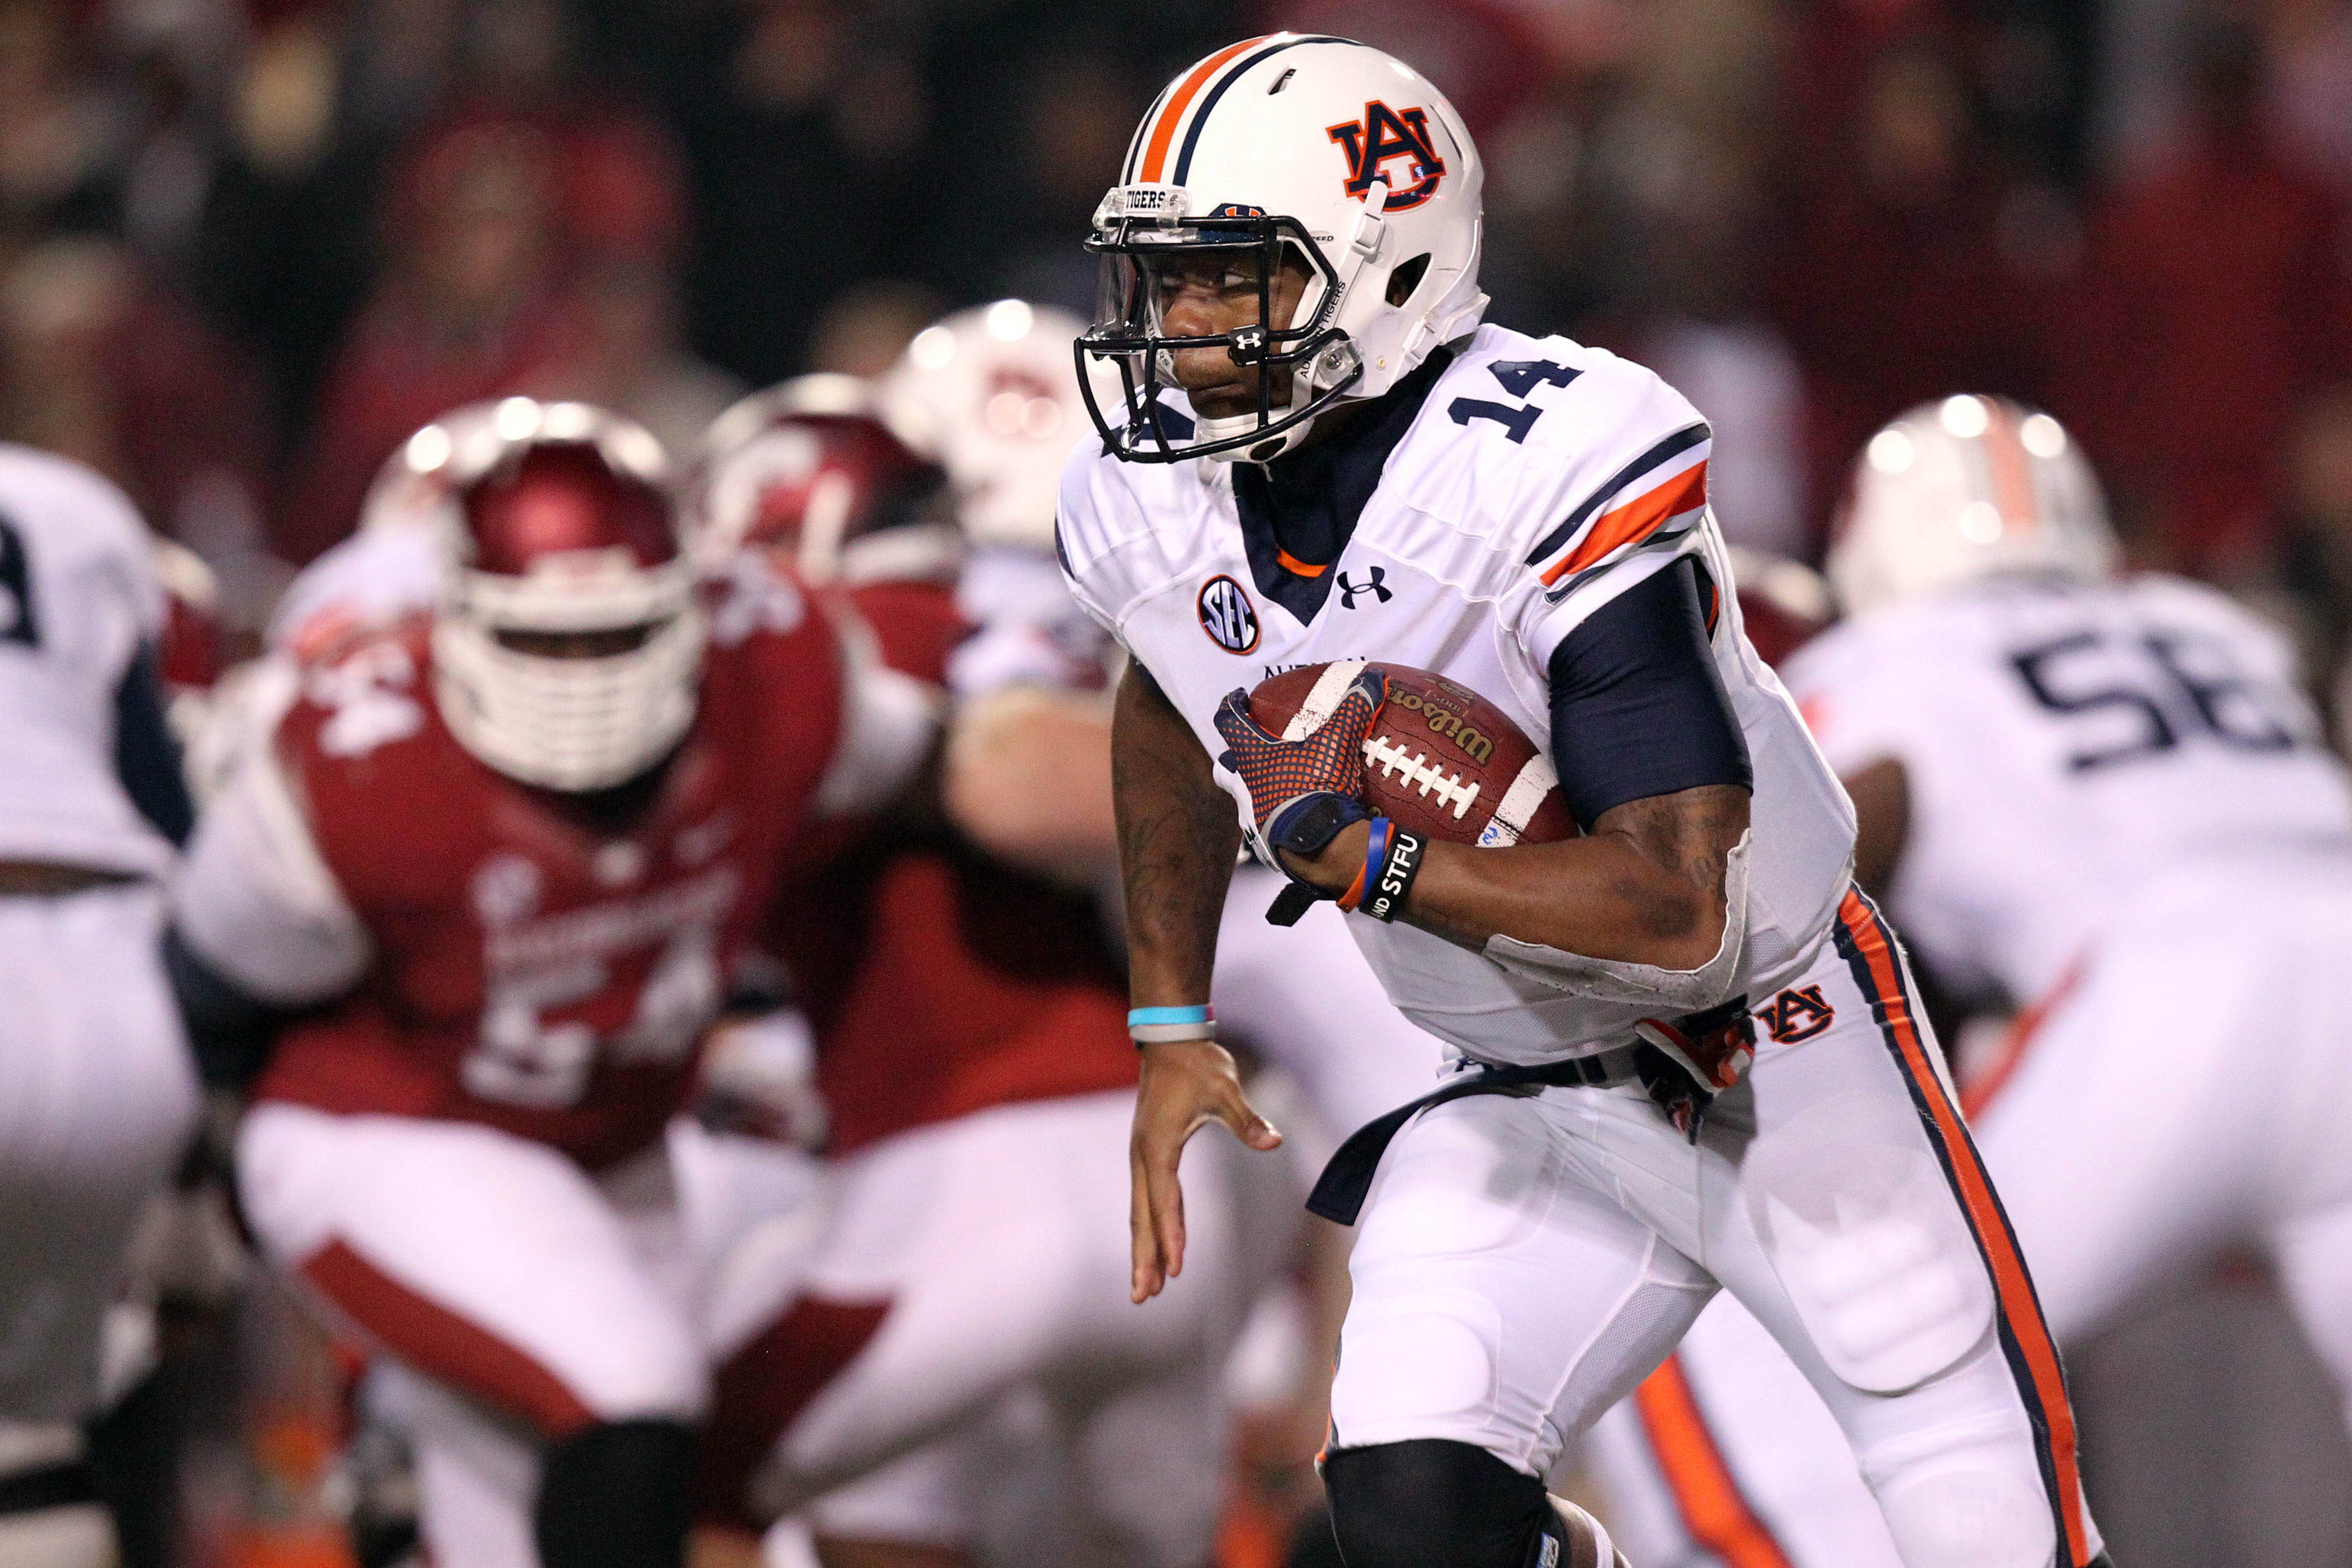 Auburn and Arkansas will put up or shut up in Week 1